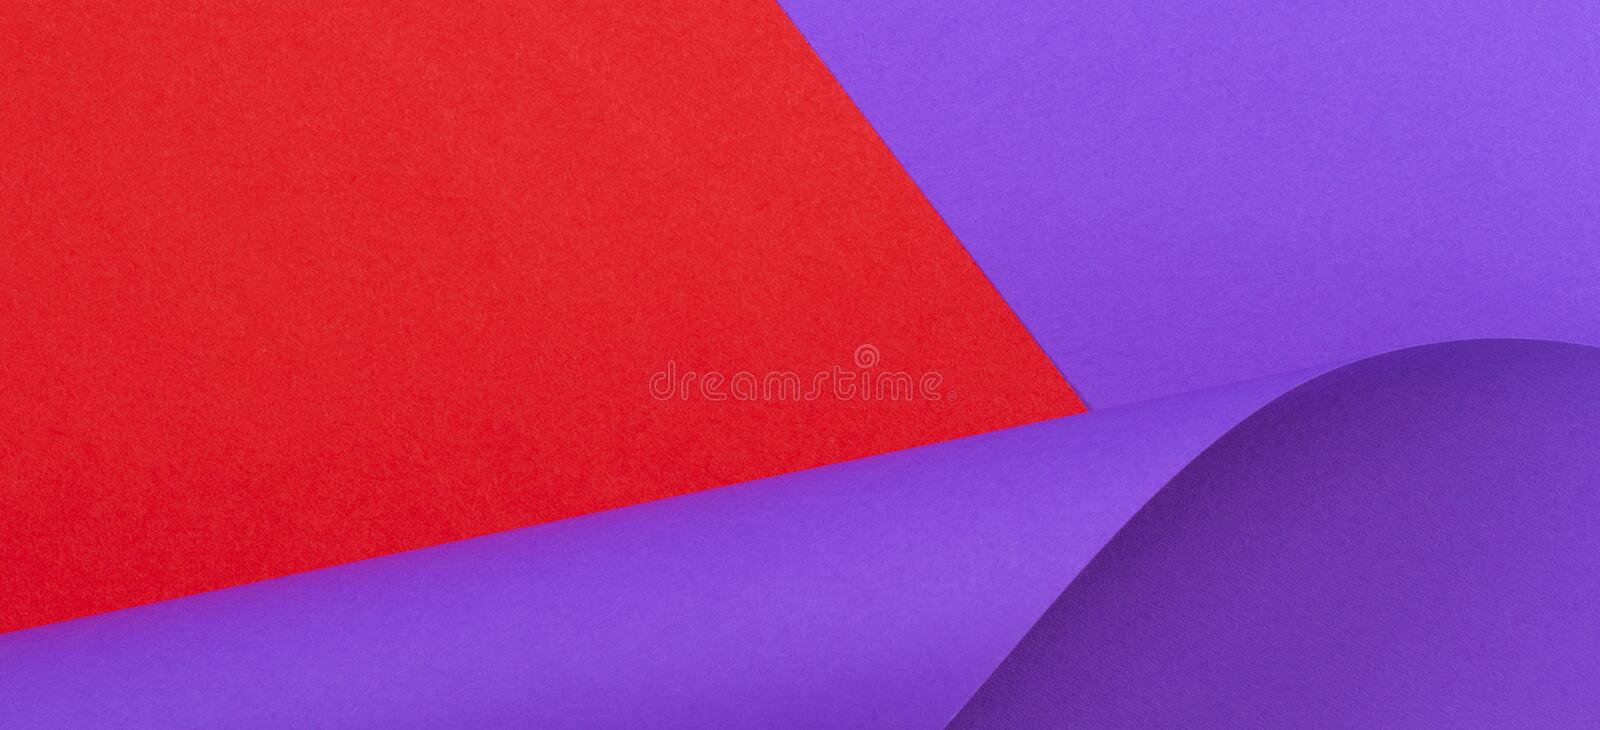 Abstract colorful background. Red violet purple color paper in geometric shapes.  royalty free stock images